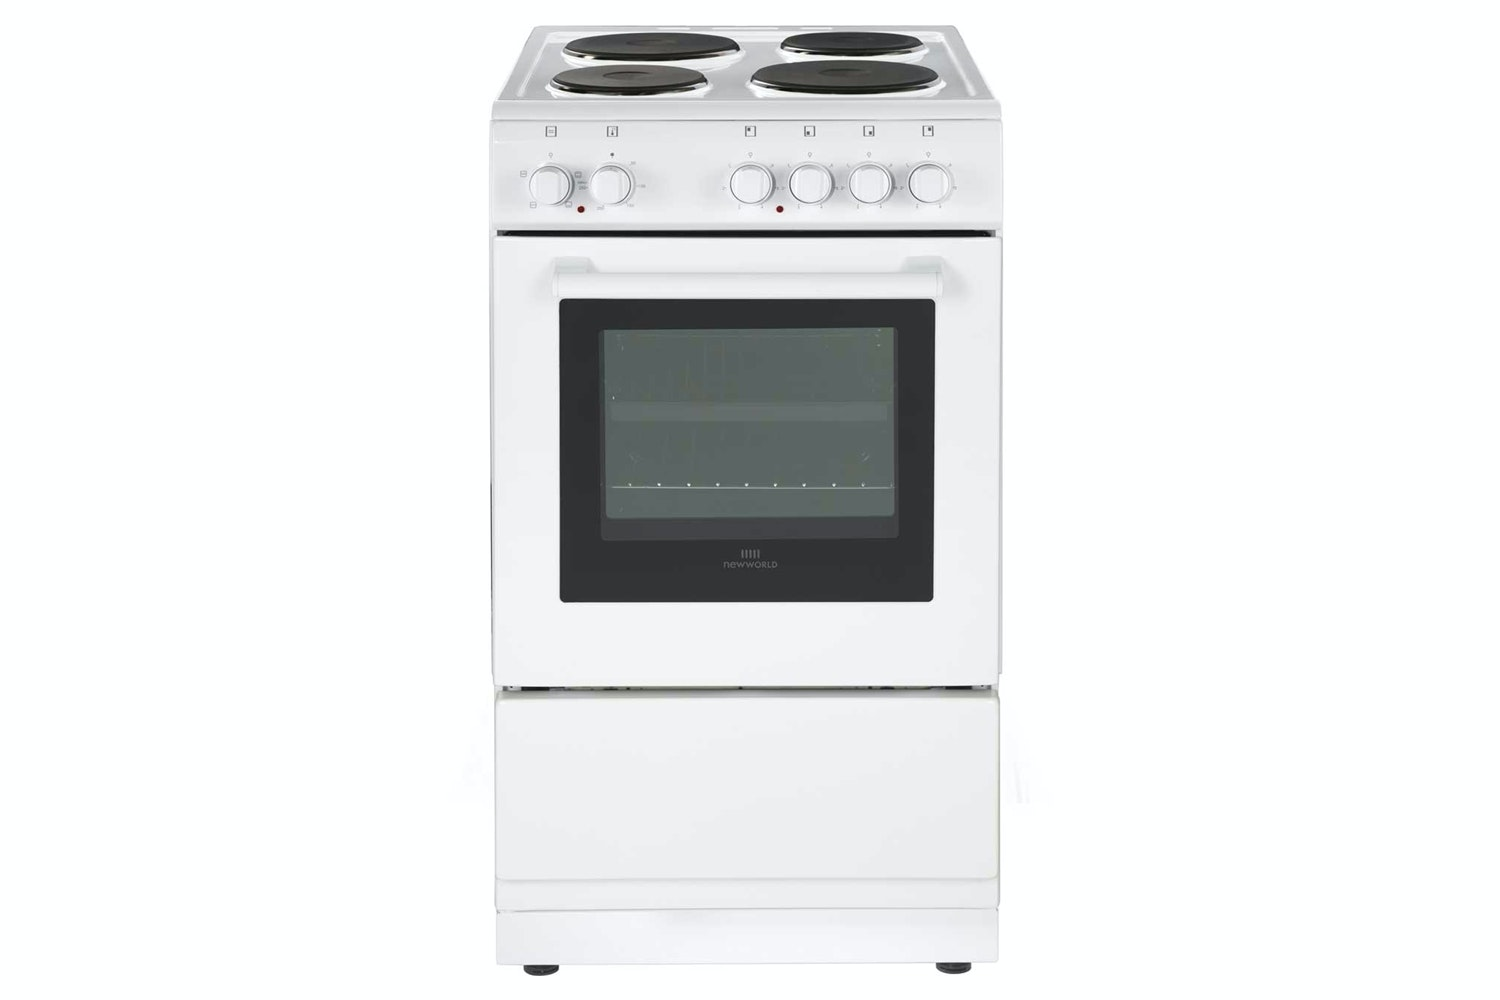 New World 50cm Electric Cooker | NW50ESWH | White